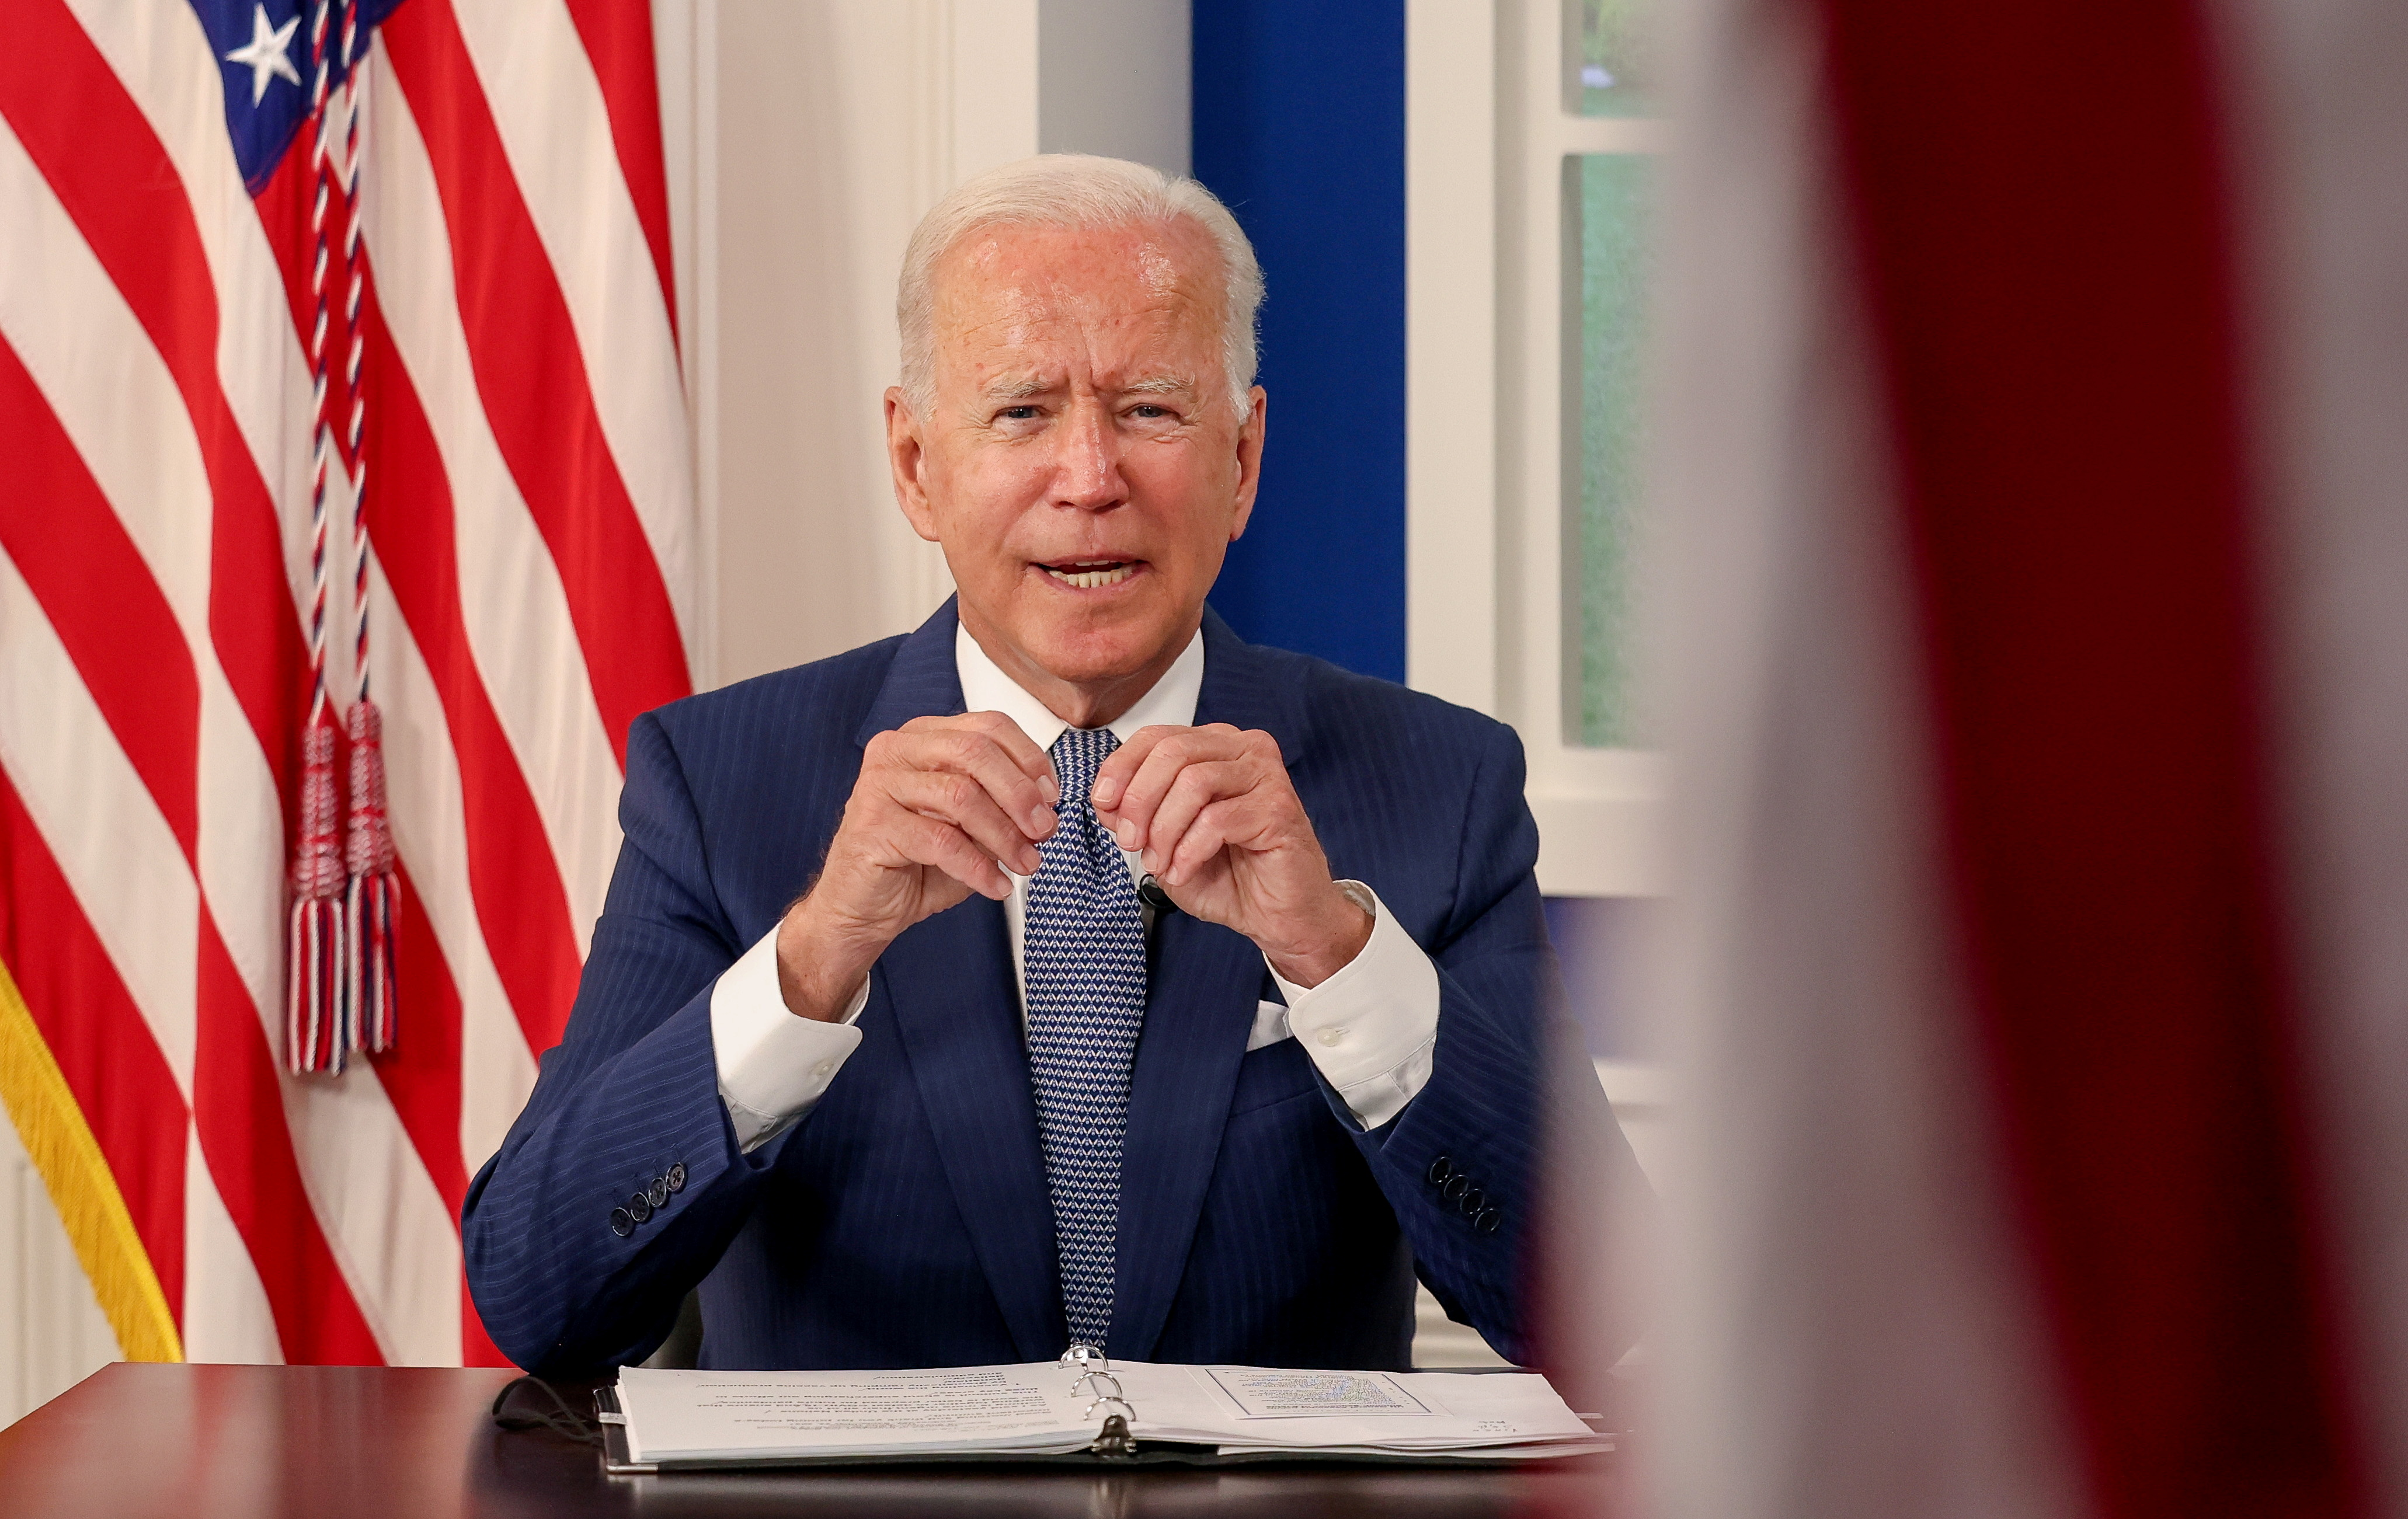 U.S. President Joe Biden hosts a virtual coronavirus disease (COVID-19) Summit as part of the United Nations General Assembly (UNGA) from the White House in Washington, U.S., September 22, 2021.REUTERS/Evelyn Hockstein